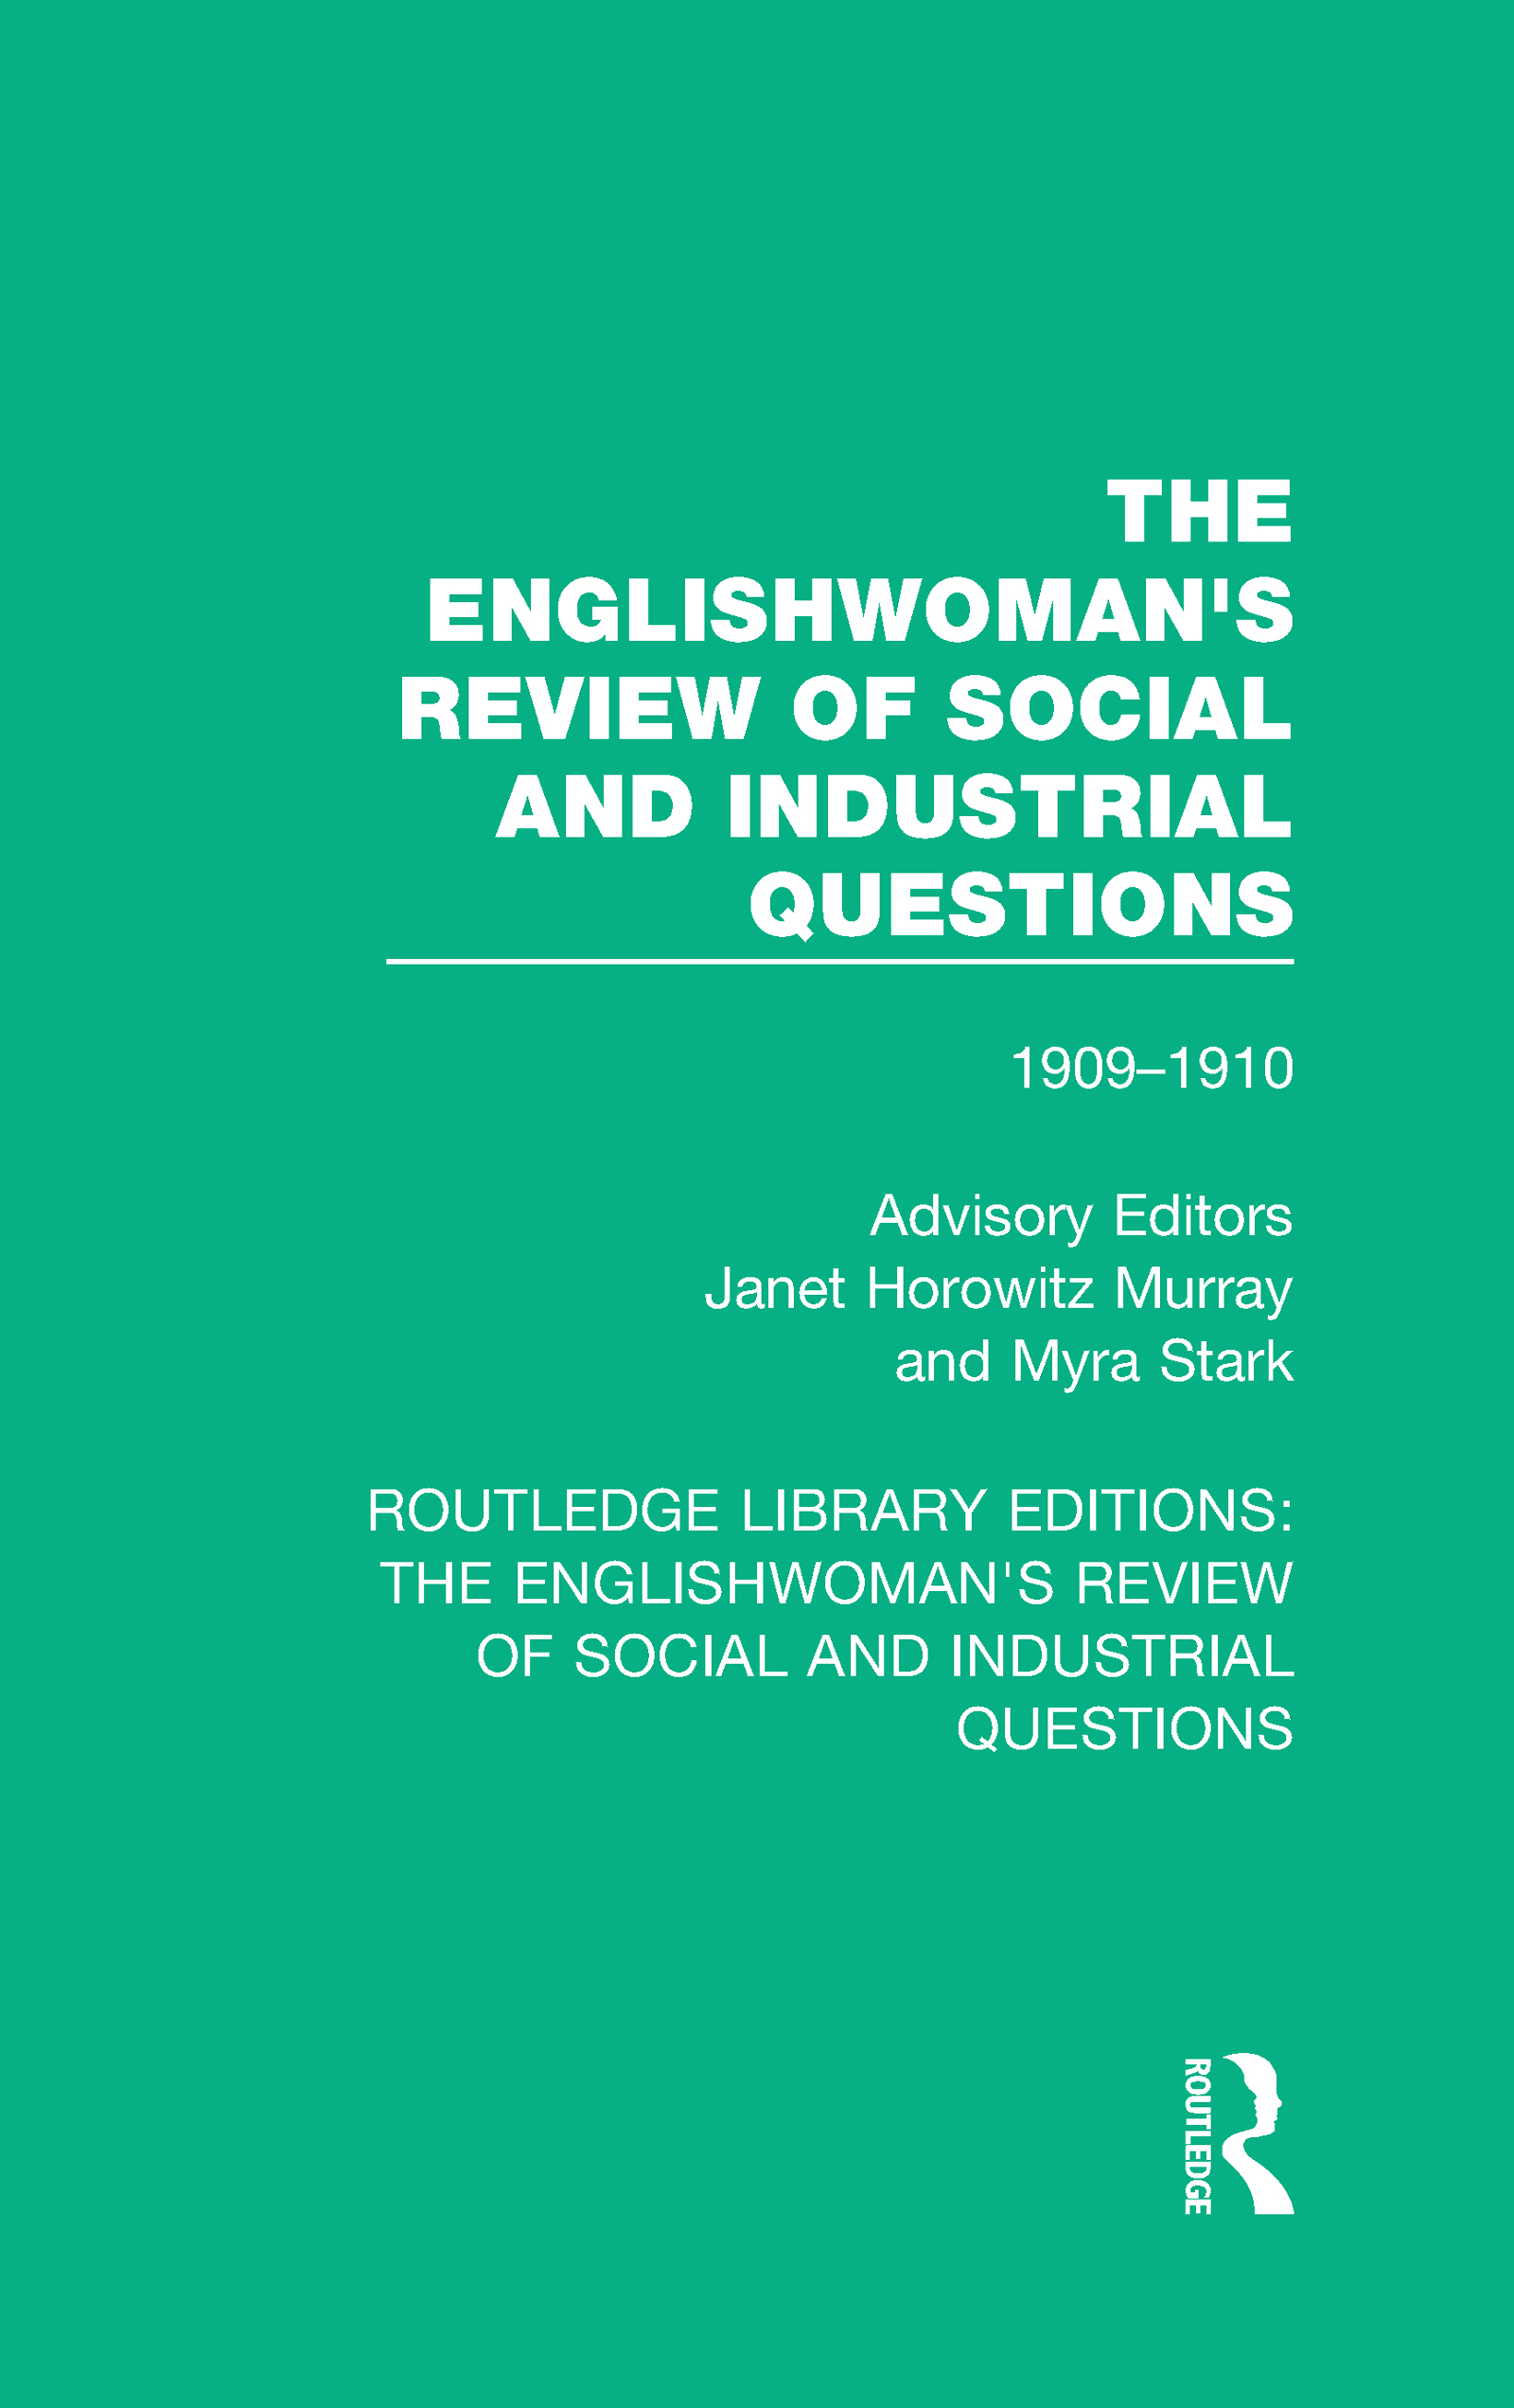 The Englishwoman's Review of Social and Industrial Questions: 1909-1910 book cover